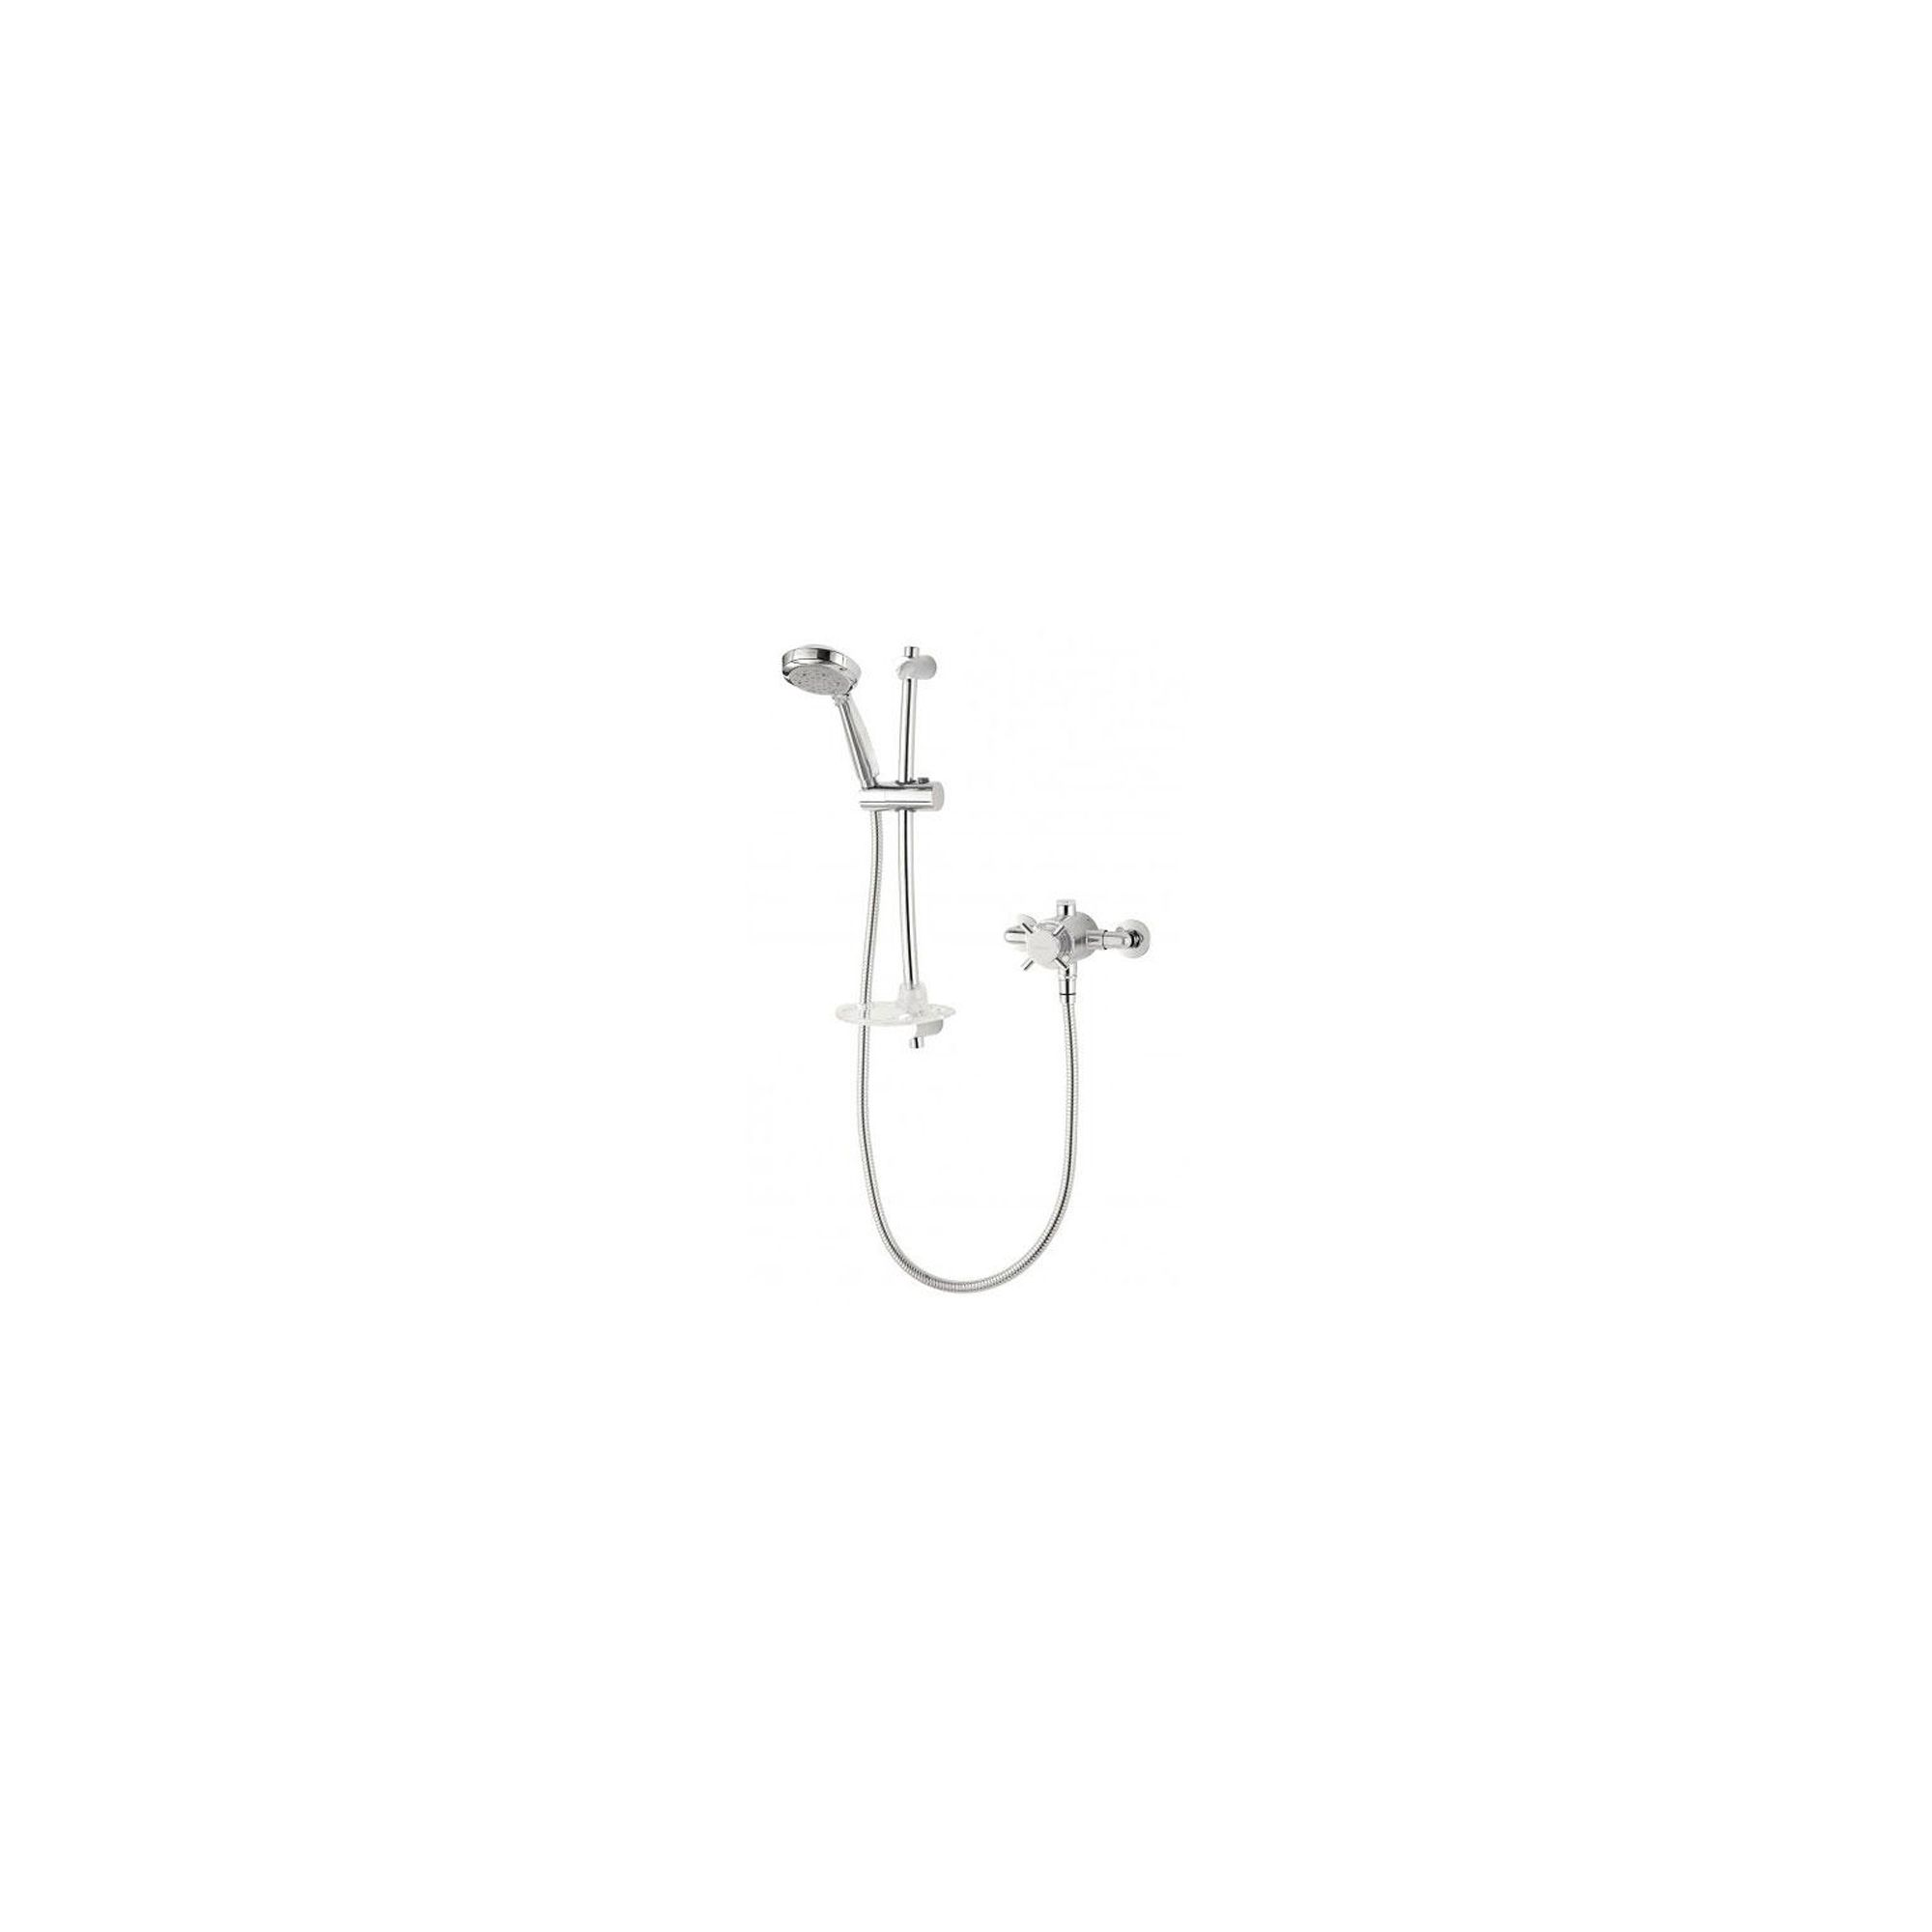 Triton Mersey Exposed Thermostatic Sequential Mixer Chrome at Tesco Direct